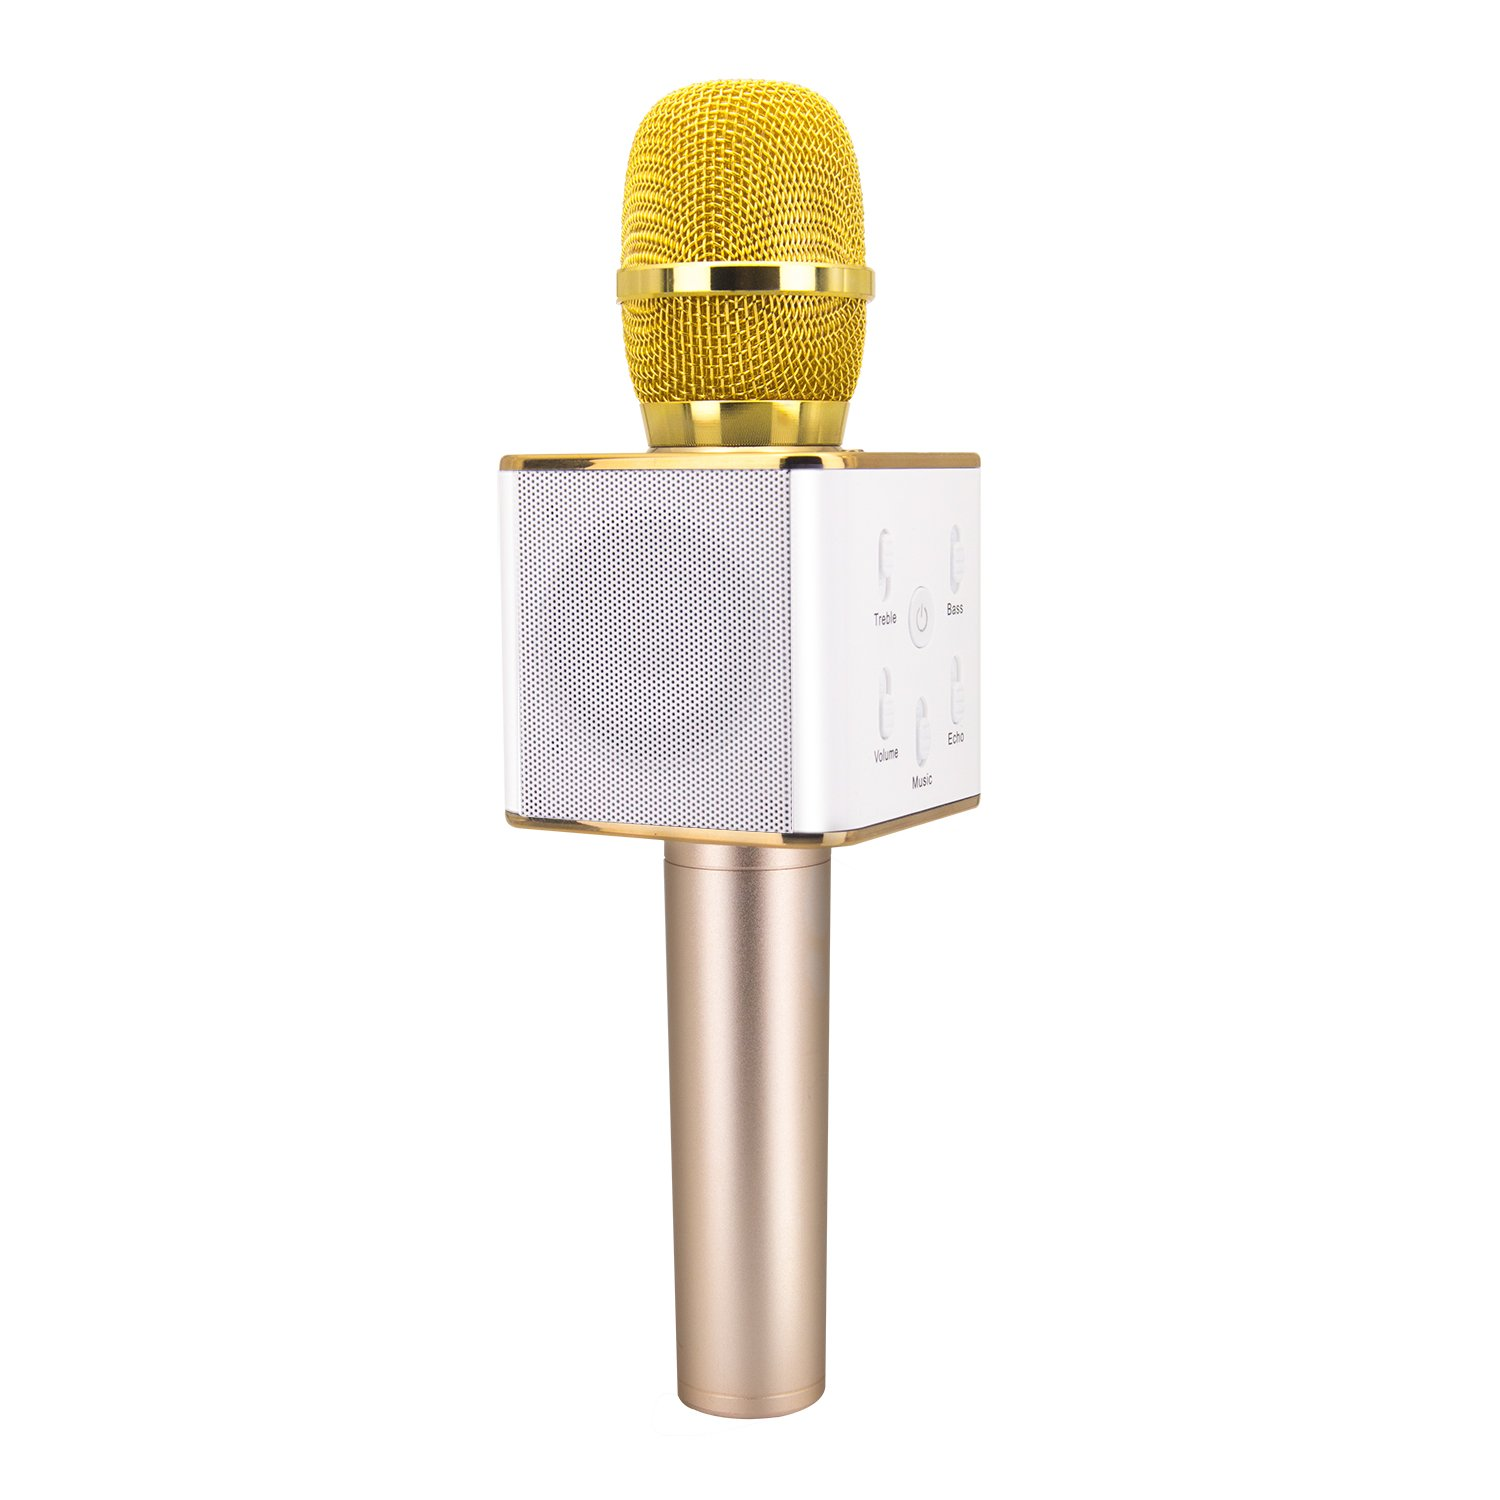 TOSING Q7 Wireless Karaoke Microphone Bluetooth Speaker 2-in-1 Handheld Sing & Recording Portable KTV Player Mini Home KTV Music Machine System for iPhone/Android Smartphone/Tablet Compatible (gold) MicrophoneMQ7-01